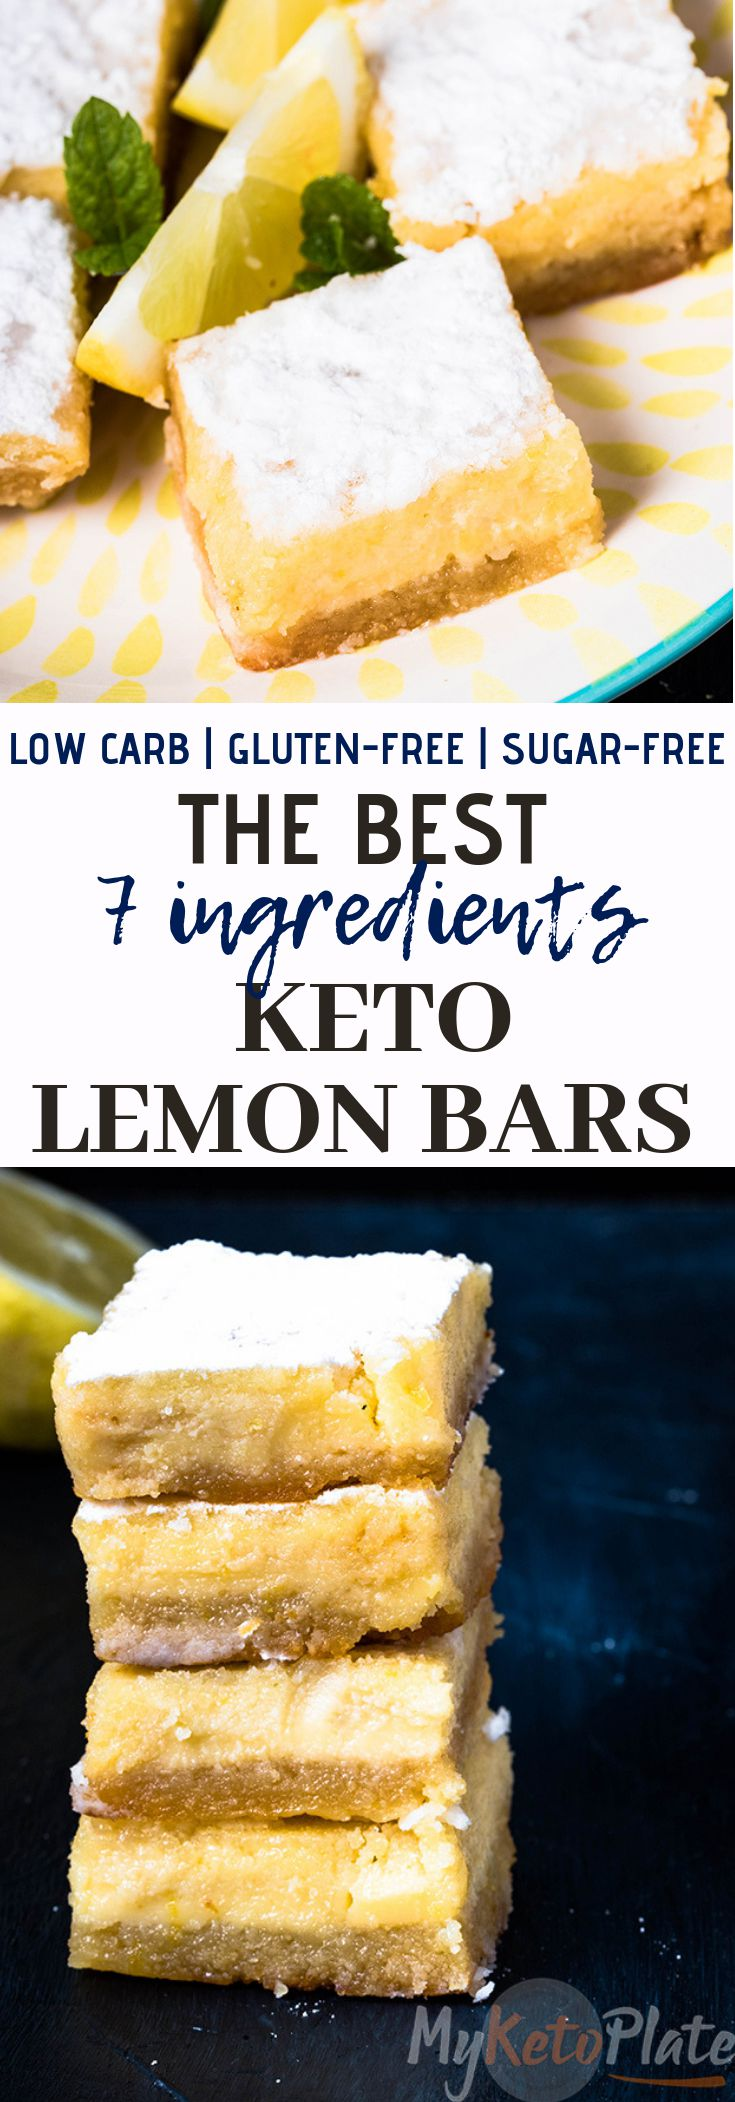 The Best Keto Lemon Bars - Only 4g Carbs